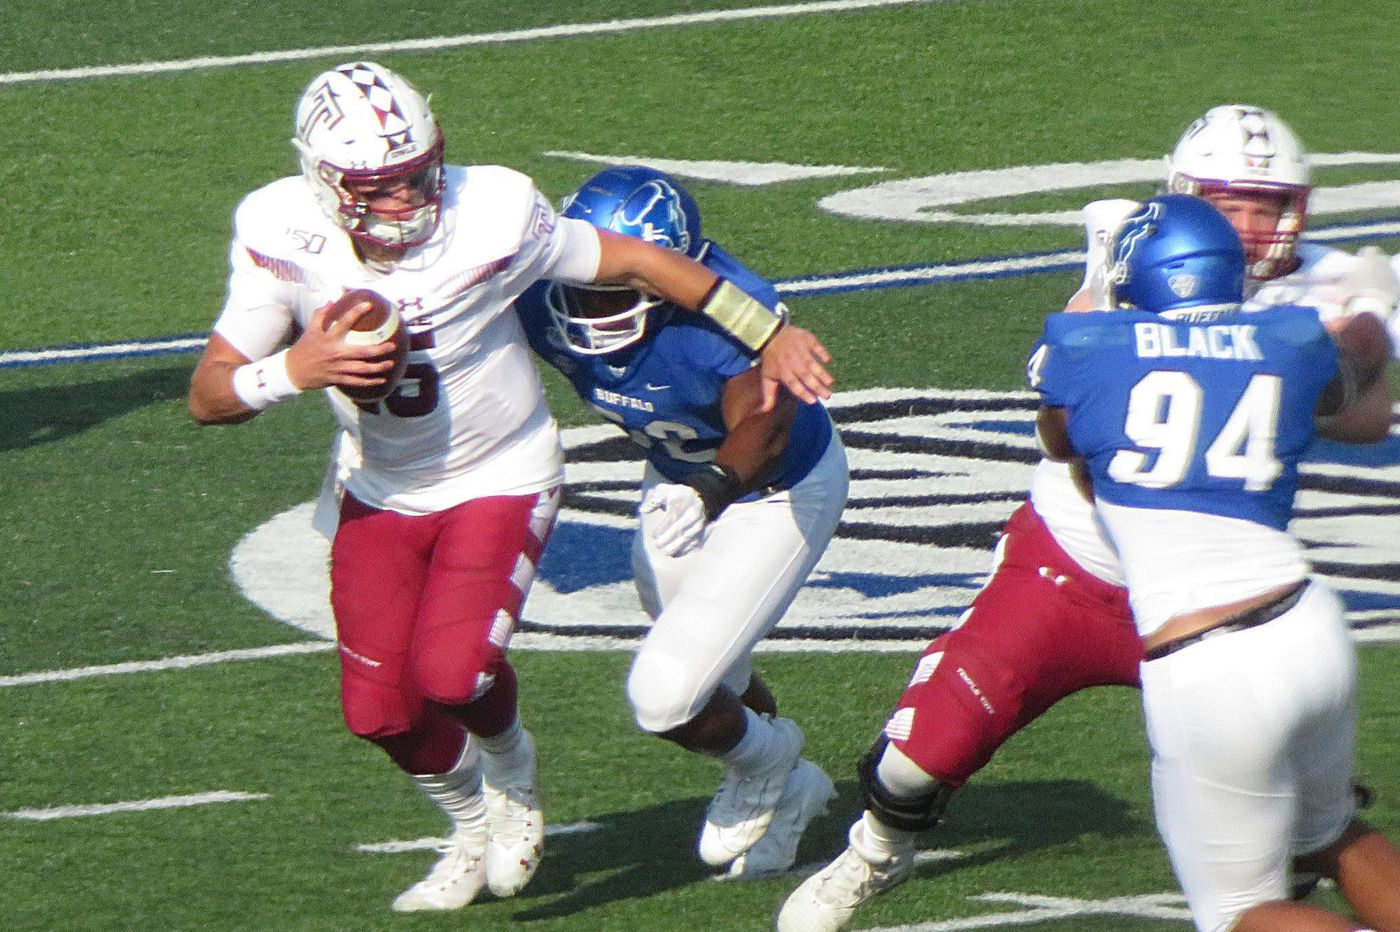 Temple falls to Buffalo: Three takeaways from the surprising loss